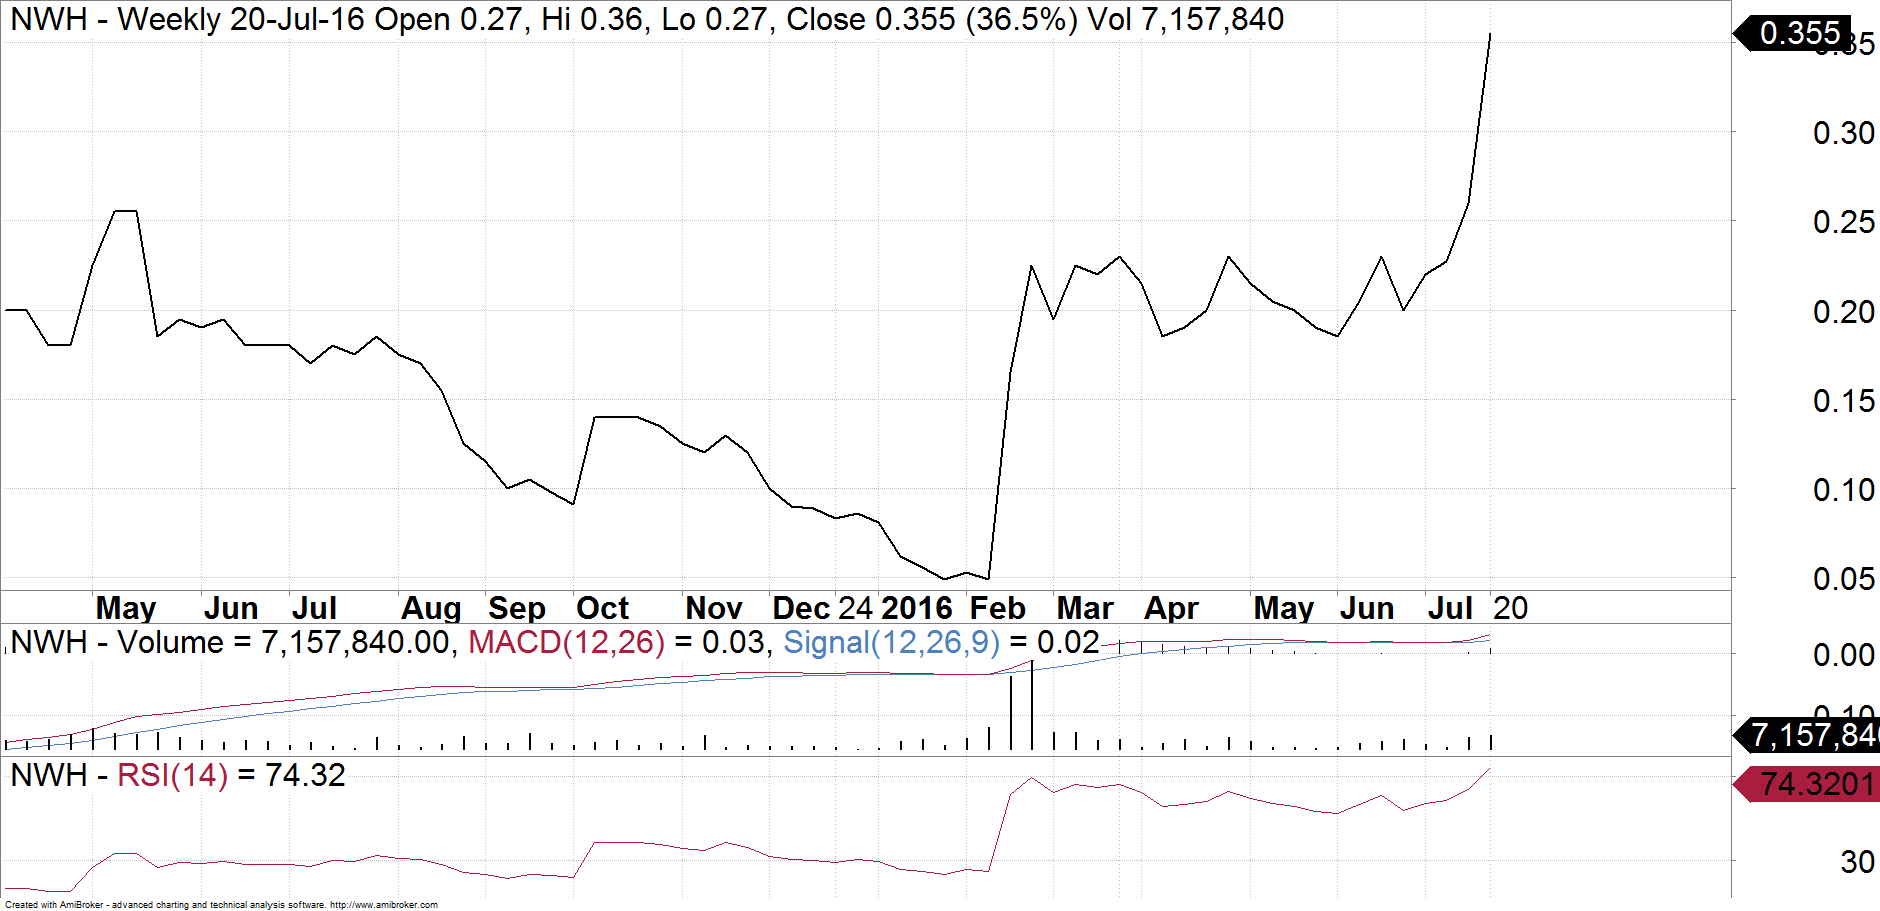 Chart of NRW Holdings